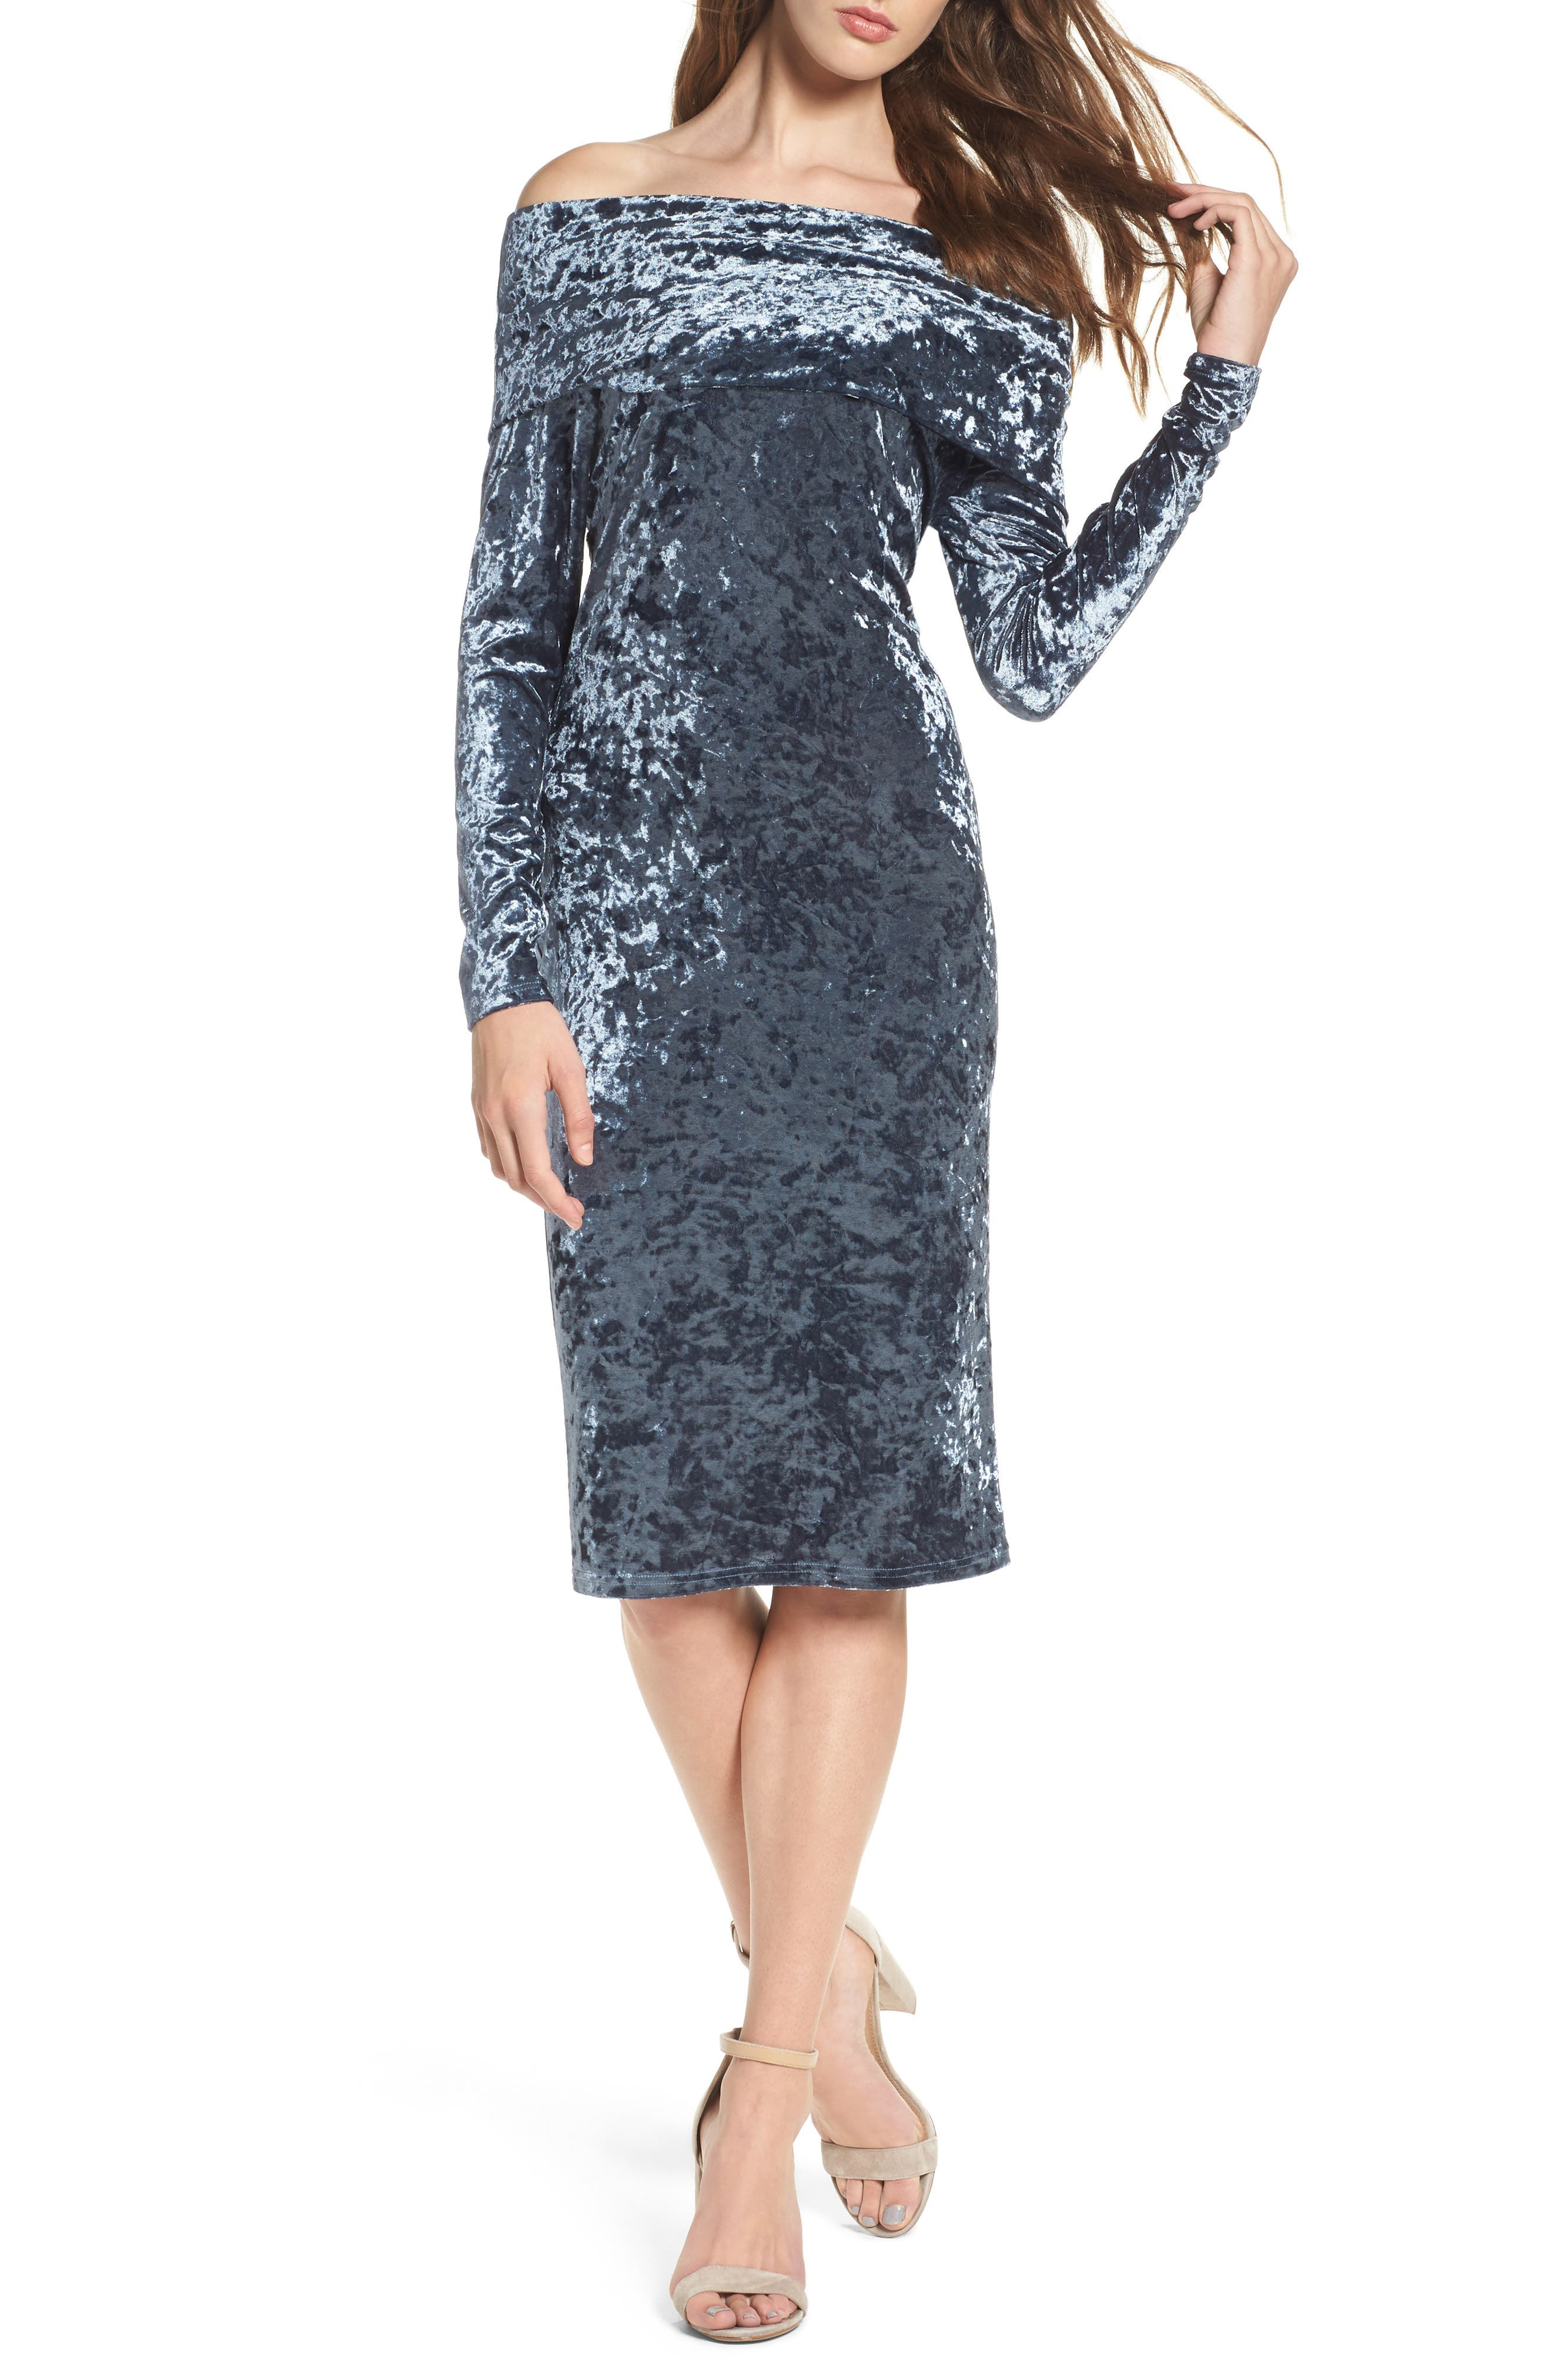 NSR Off the Shoulder Crushed Velvet Dress